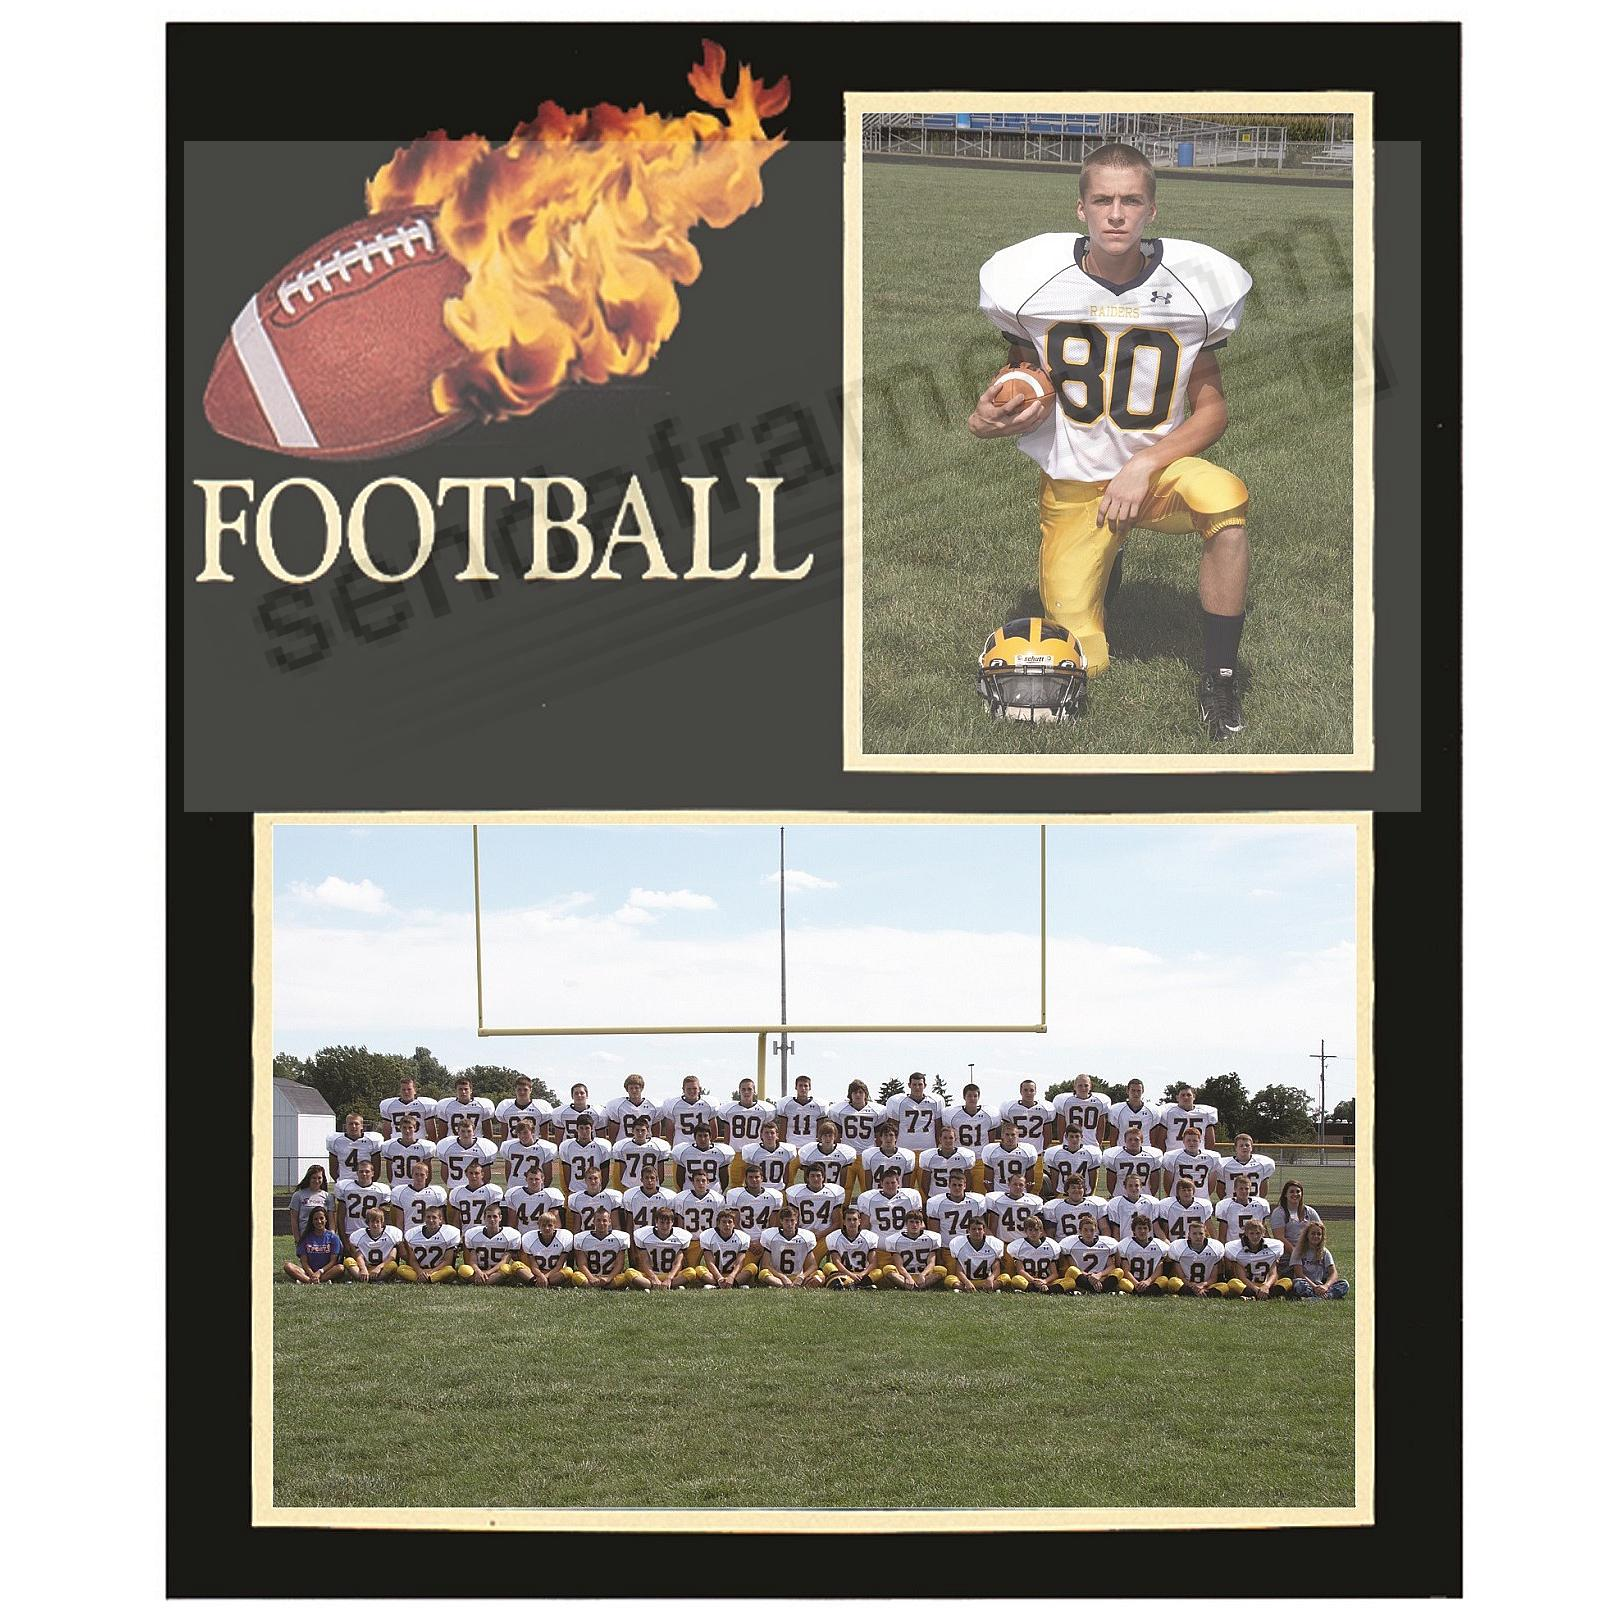 Football Player/Team 7x5/3½x5 MEMORY MATES cardstock double photo frame (sold in 10's)